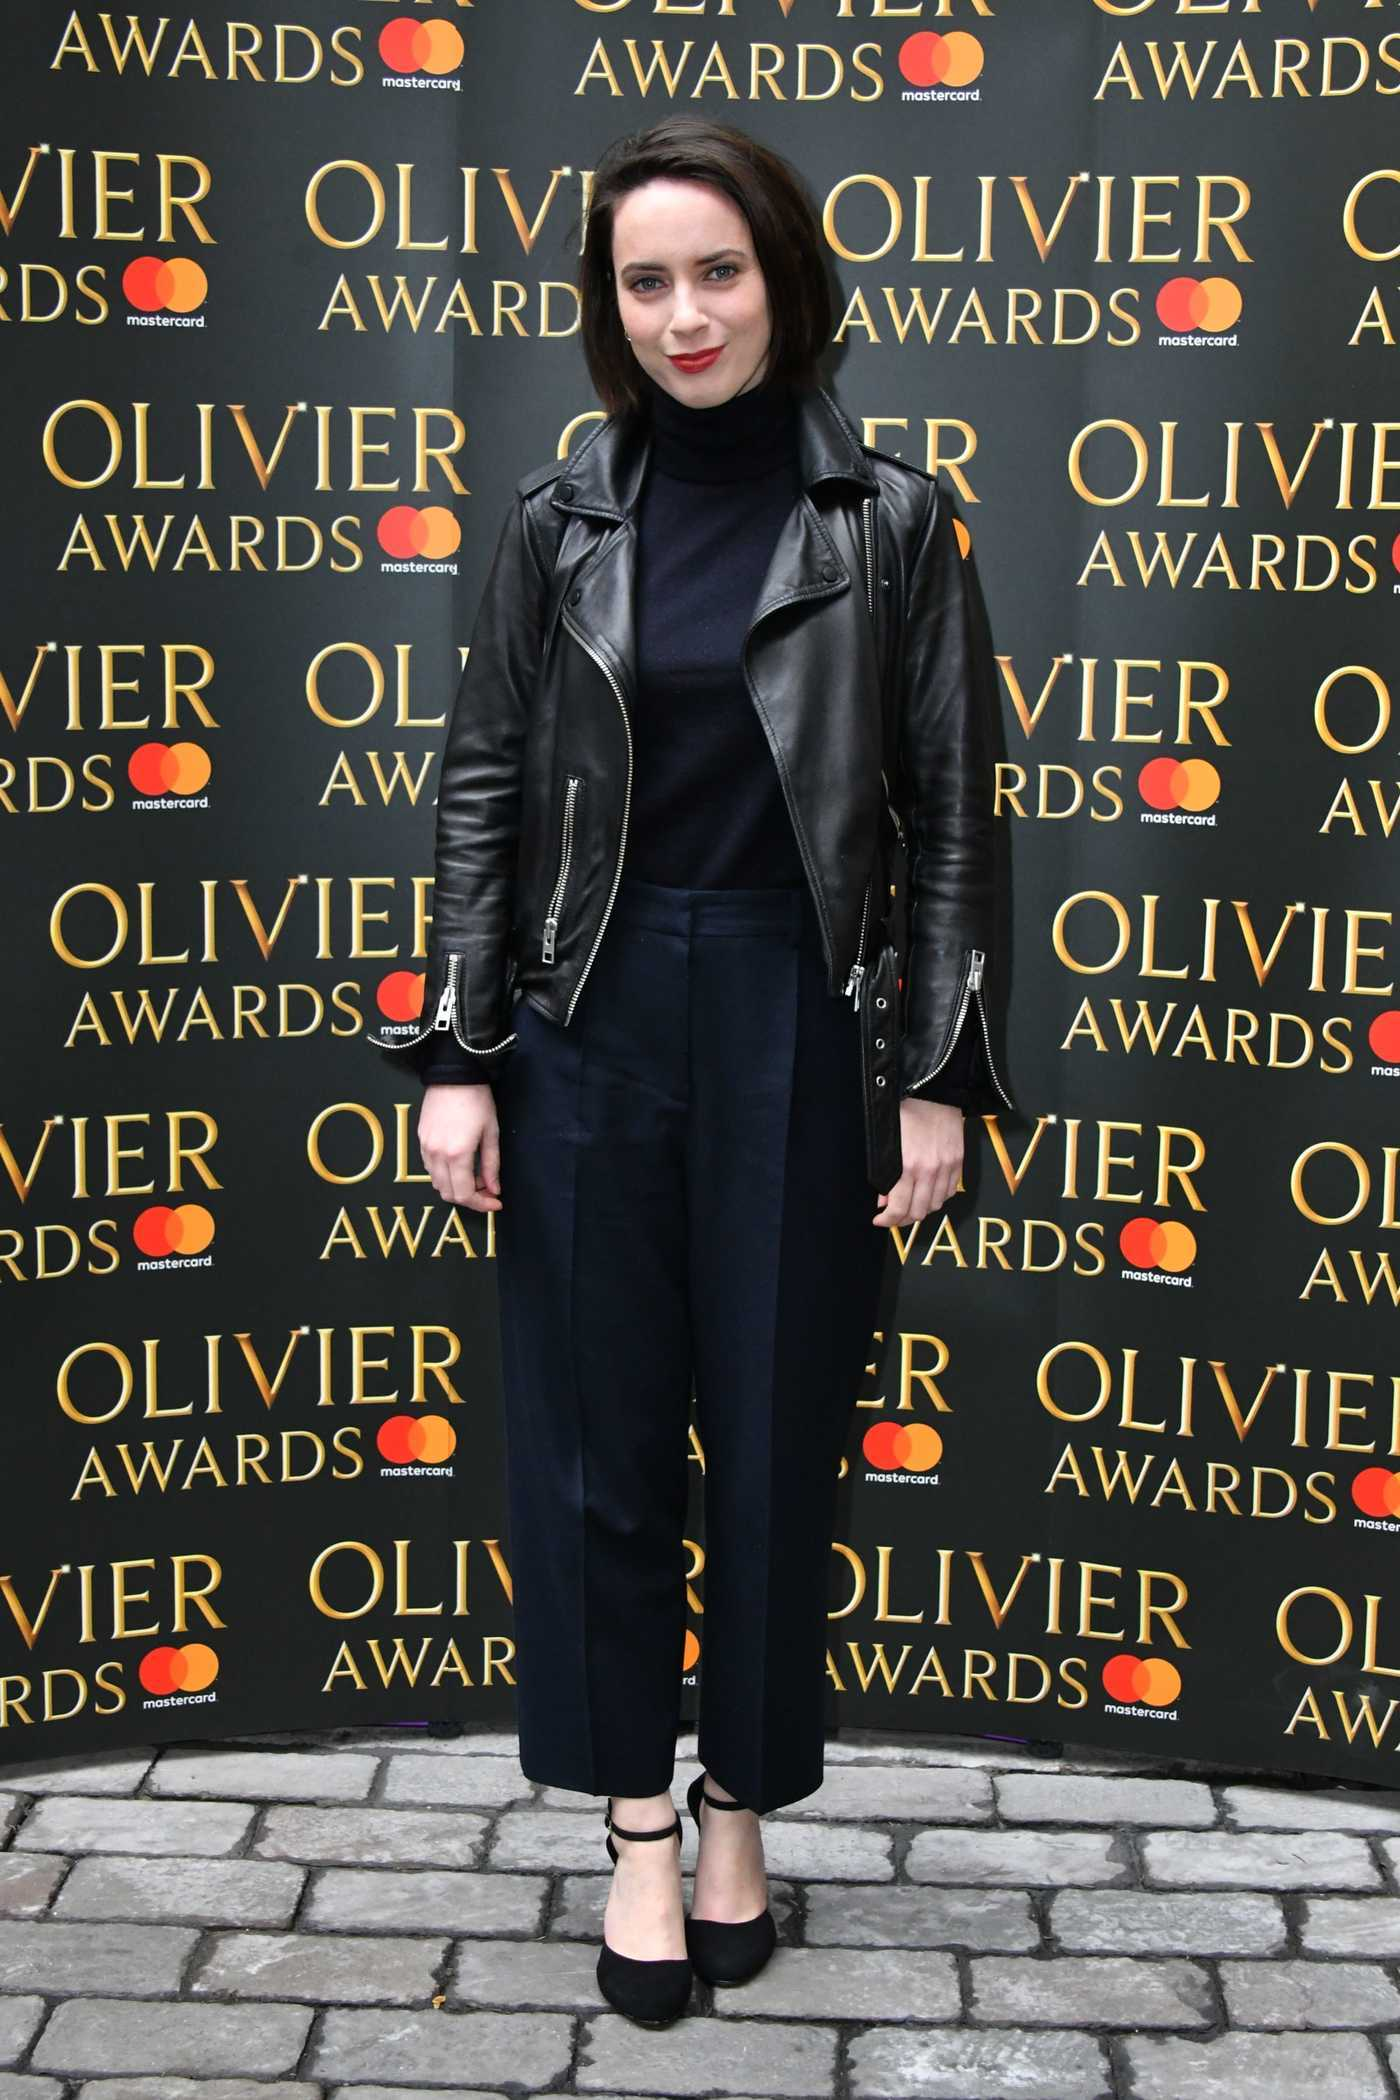 Kate O'Flynn at the Olivier Awards Nominees Luncheon at Rosewood Hotel in London 03/10/2017